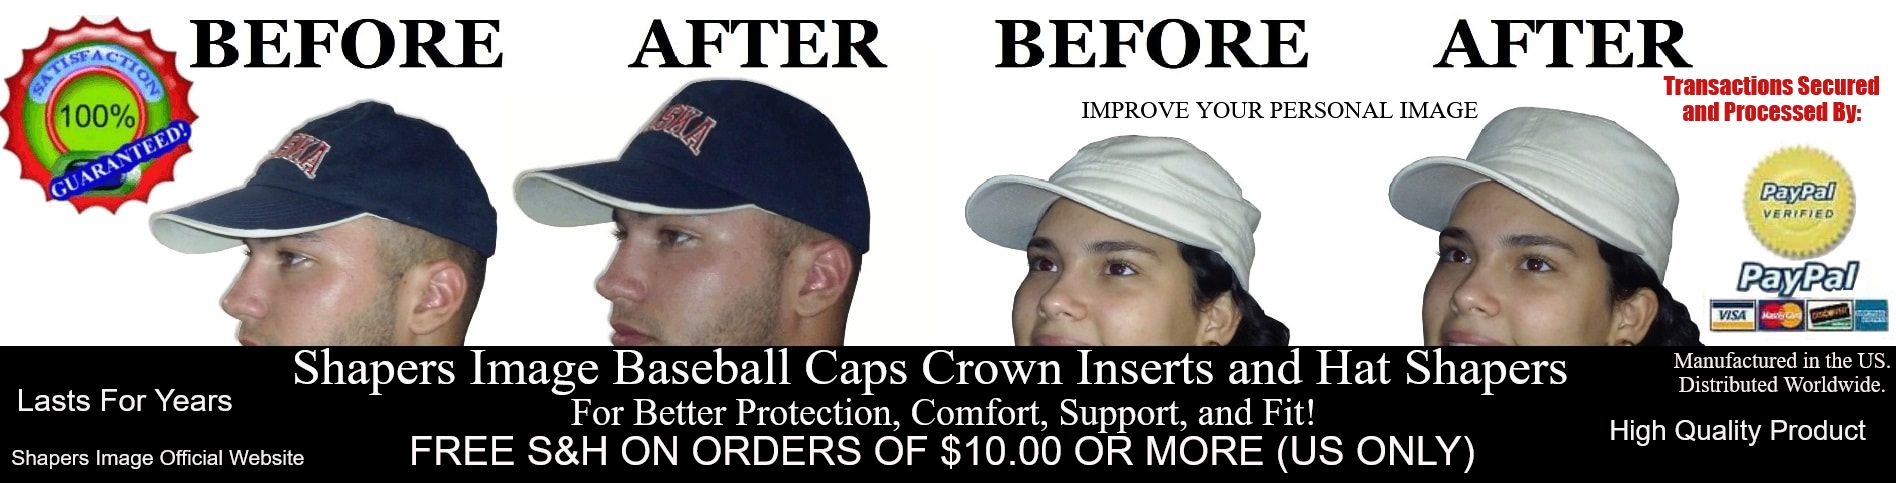 8d8f2099bd3 Shapers Image Baseball Caps Crown Inserts and Hat Shapers